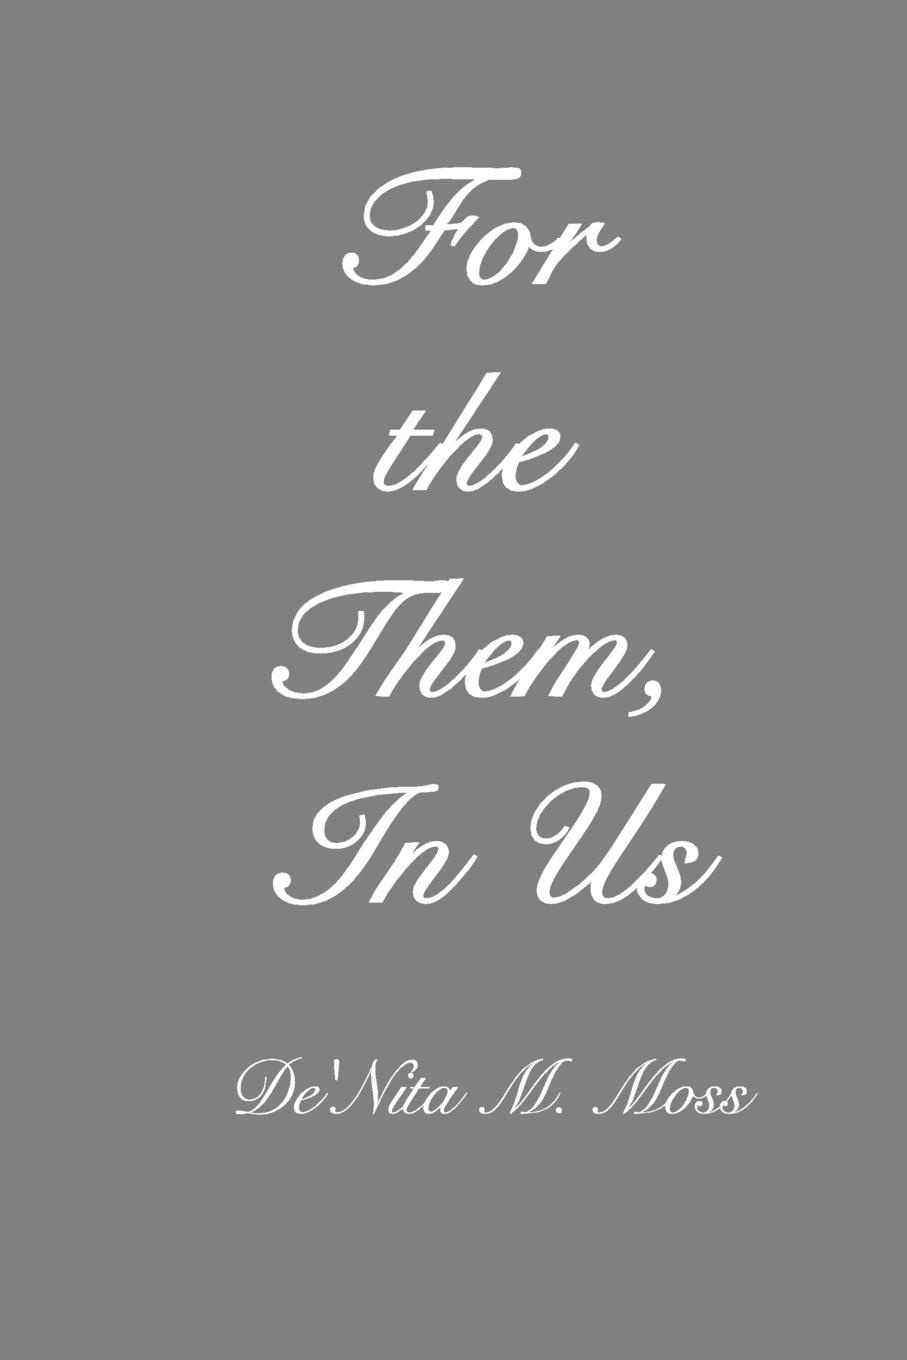 De'Nita M. Moss For the Them, In Us us and them